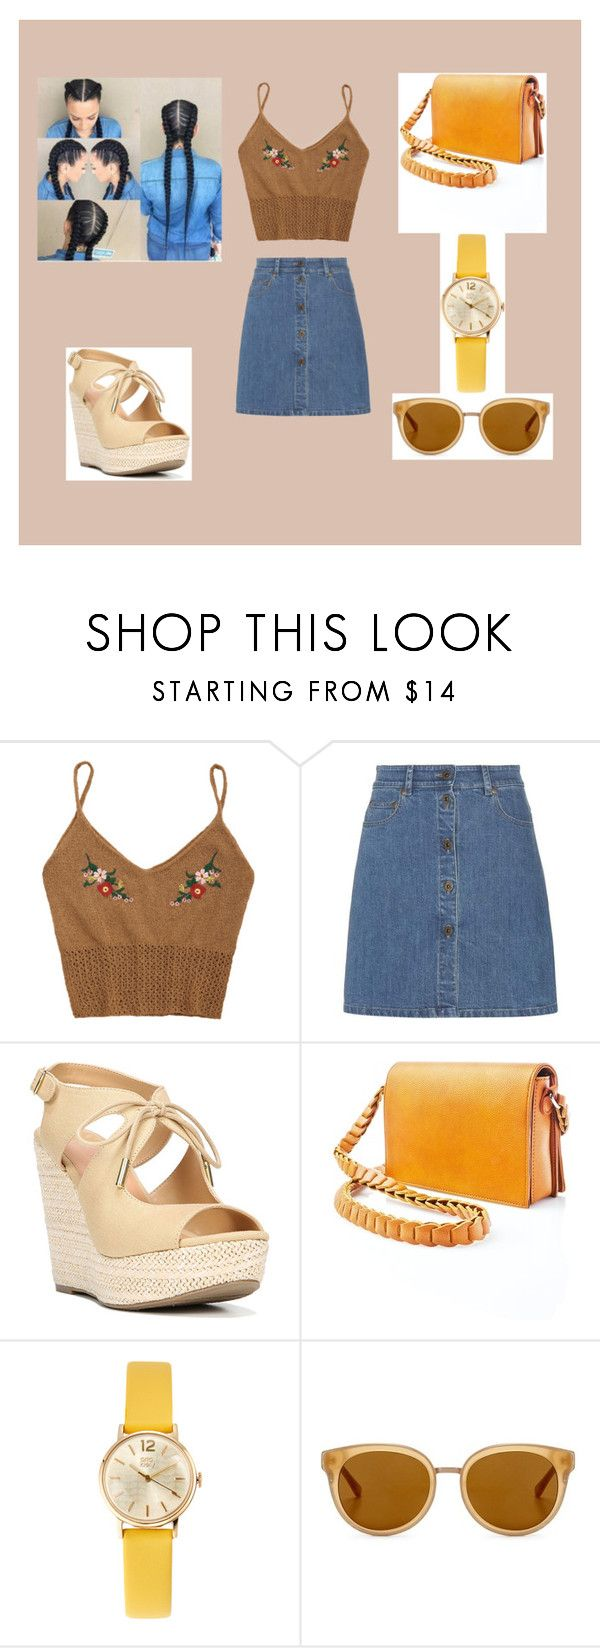 """hufflepuff"" by frencyl on Polyvore featuring moda, Miu Miu, Fergalicious, Street Level, Orla Kiely e Draper James"